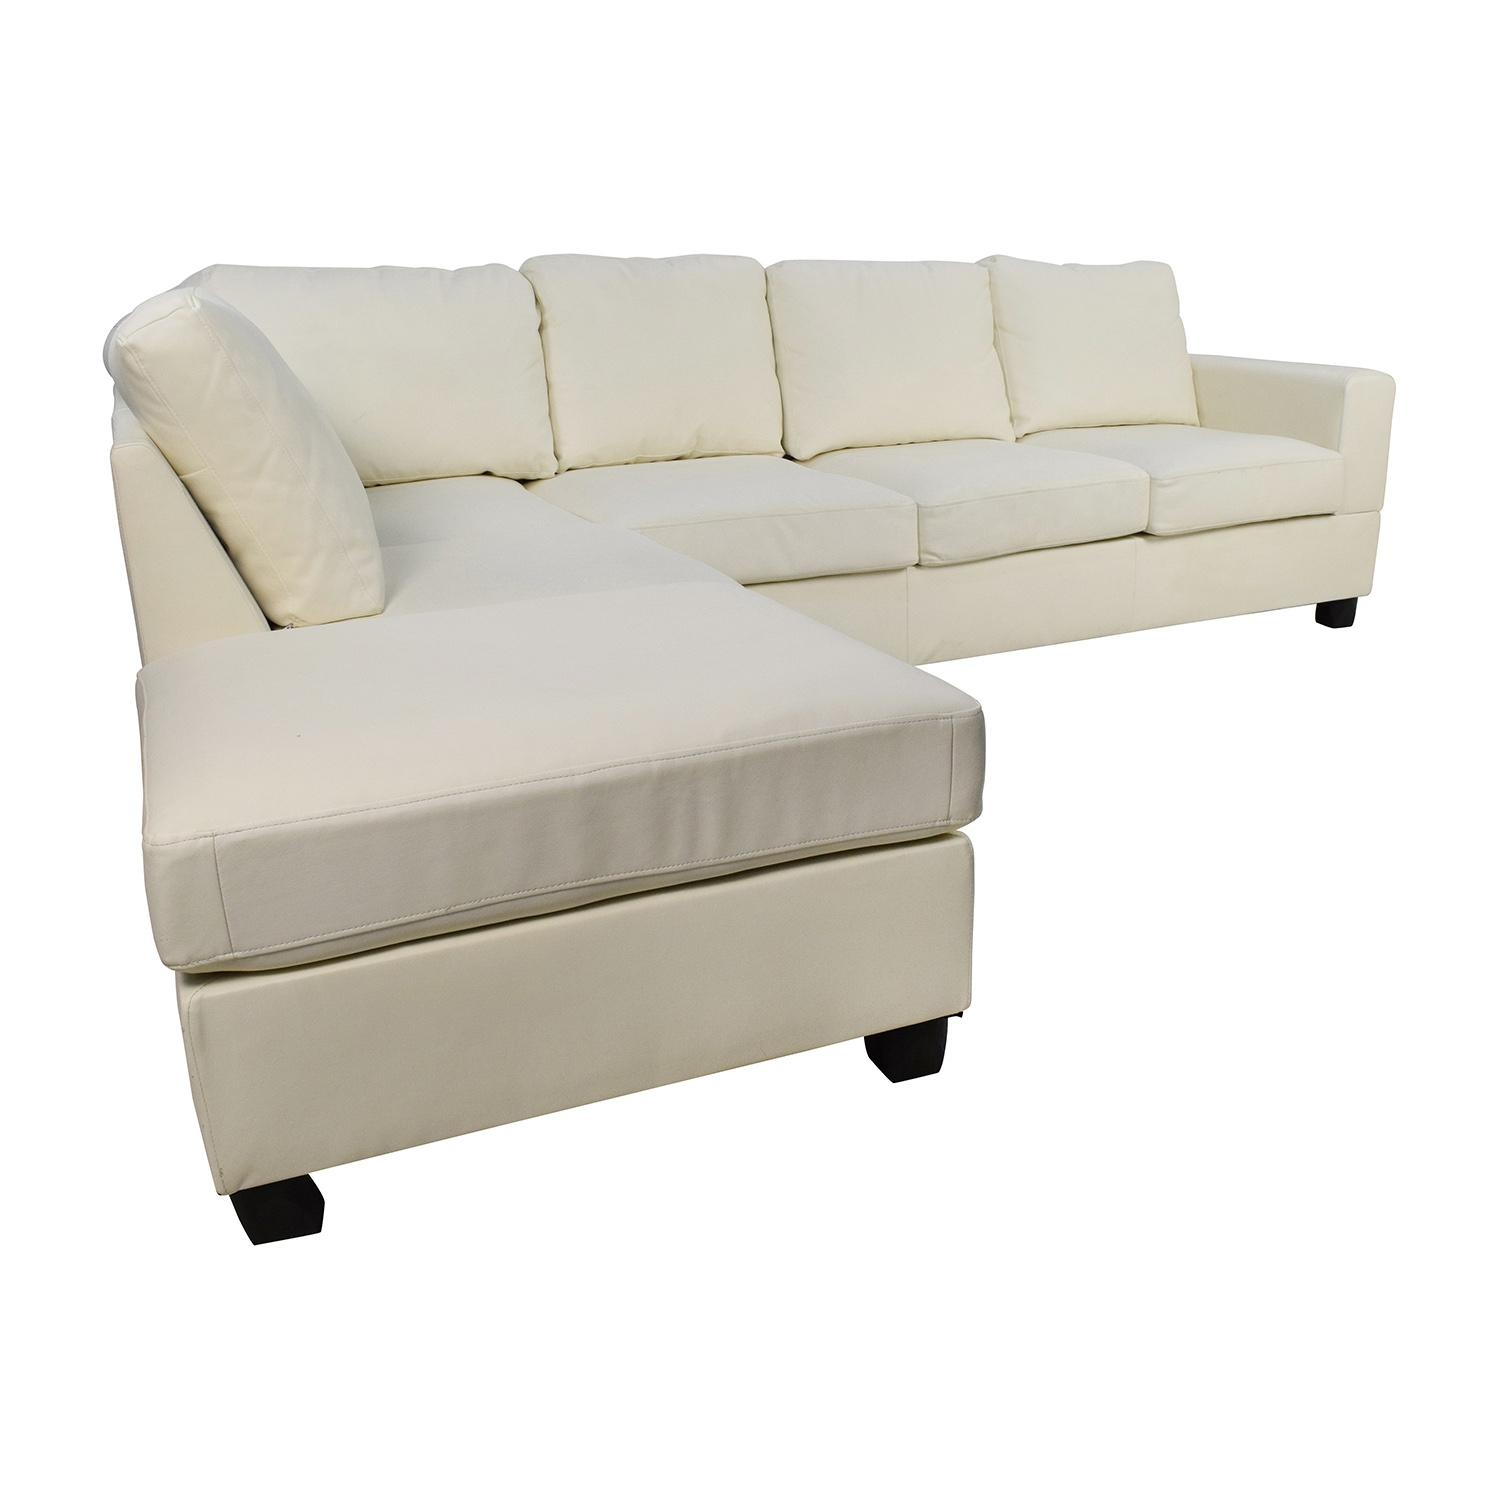 45% Off – L Shaped White Leather Sectional / Sofas With Regard To Used Sectionals (View 19 of 20)